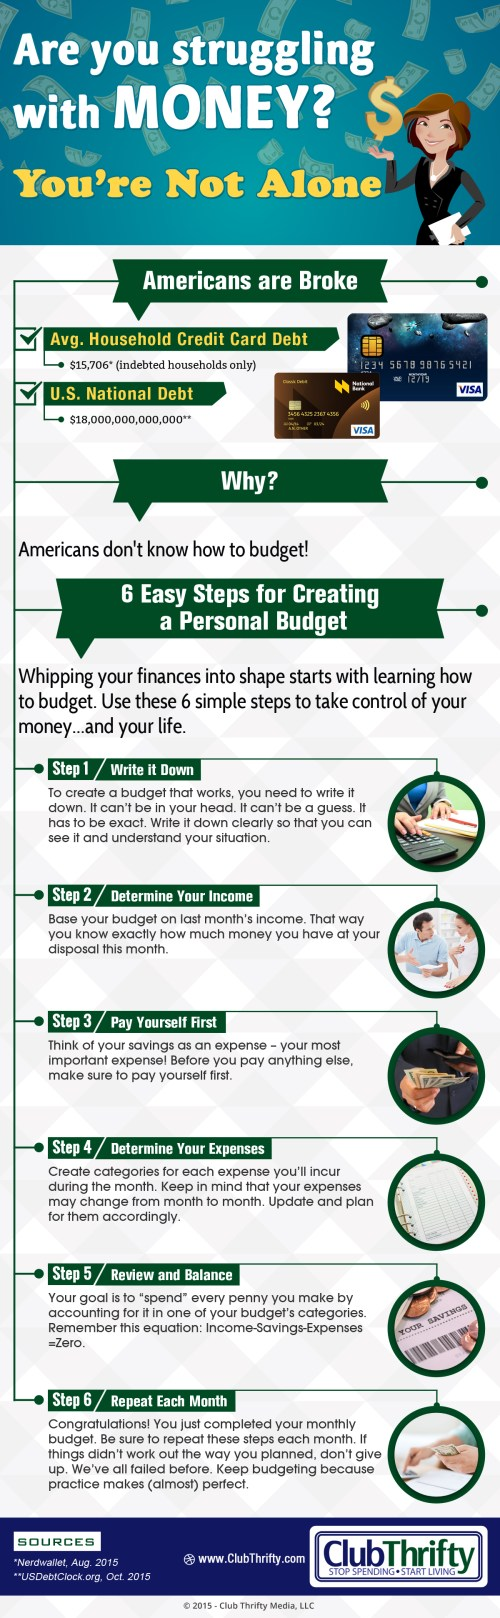 Learning how to budget doesn't have to be a chore. Take control of your money! Use this step-by-step guide to create a budget that actually works!